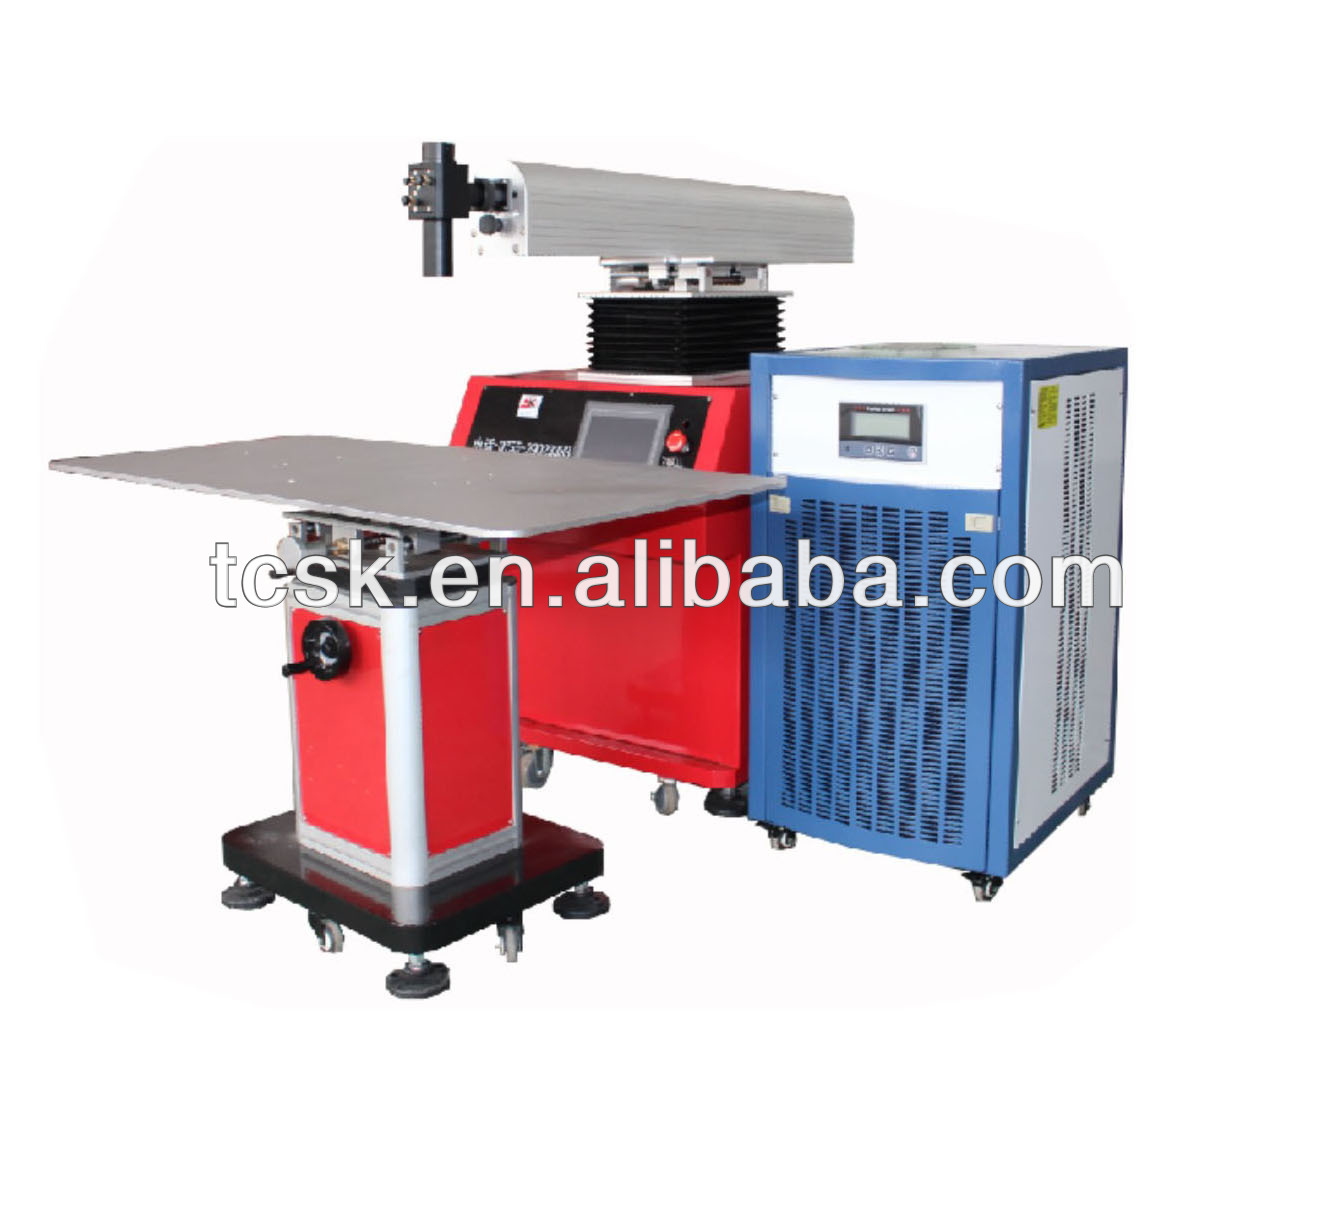 2013 Shenzhen hot sale aluminum stainless steel laser welding machine TC-YMW200